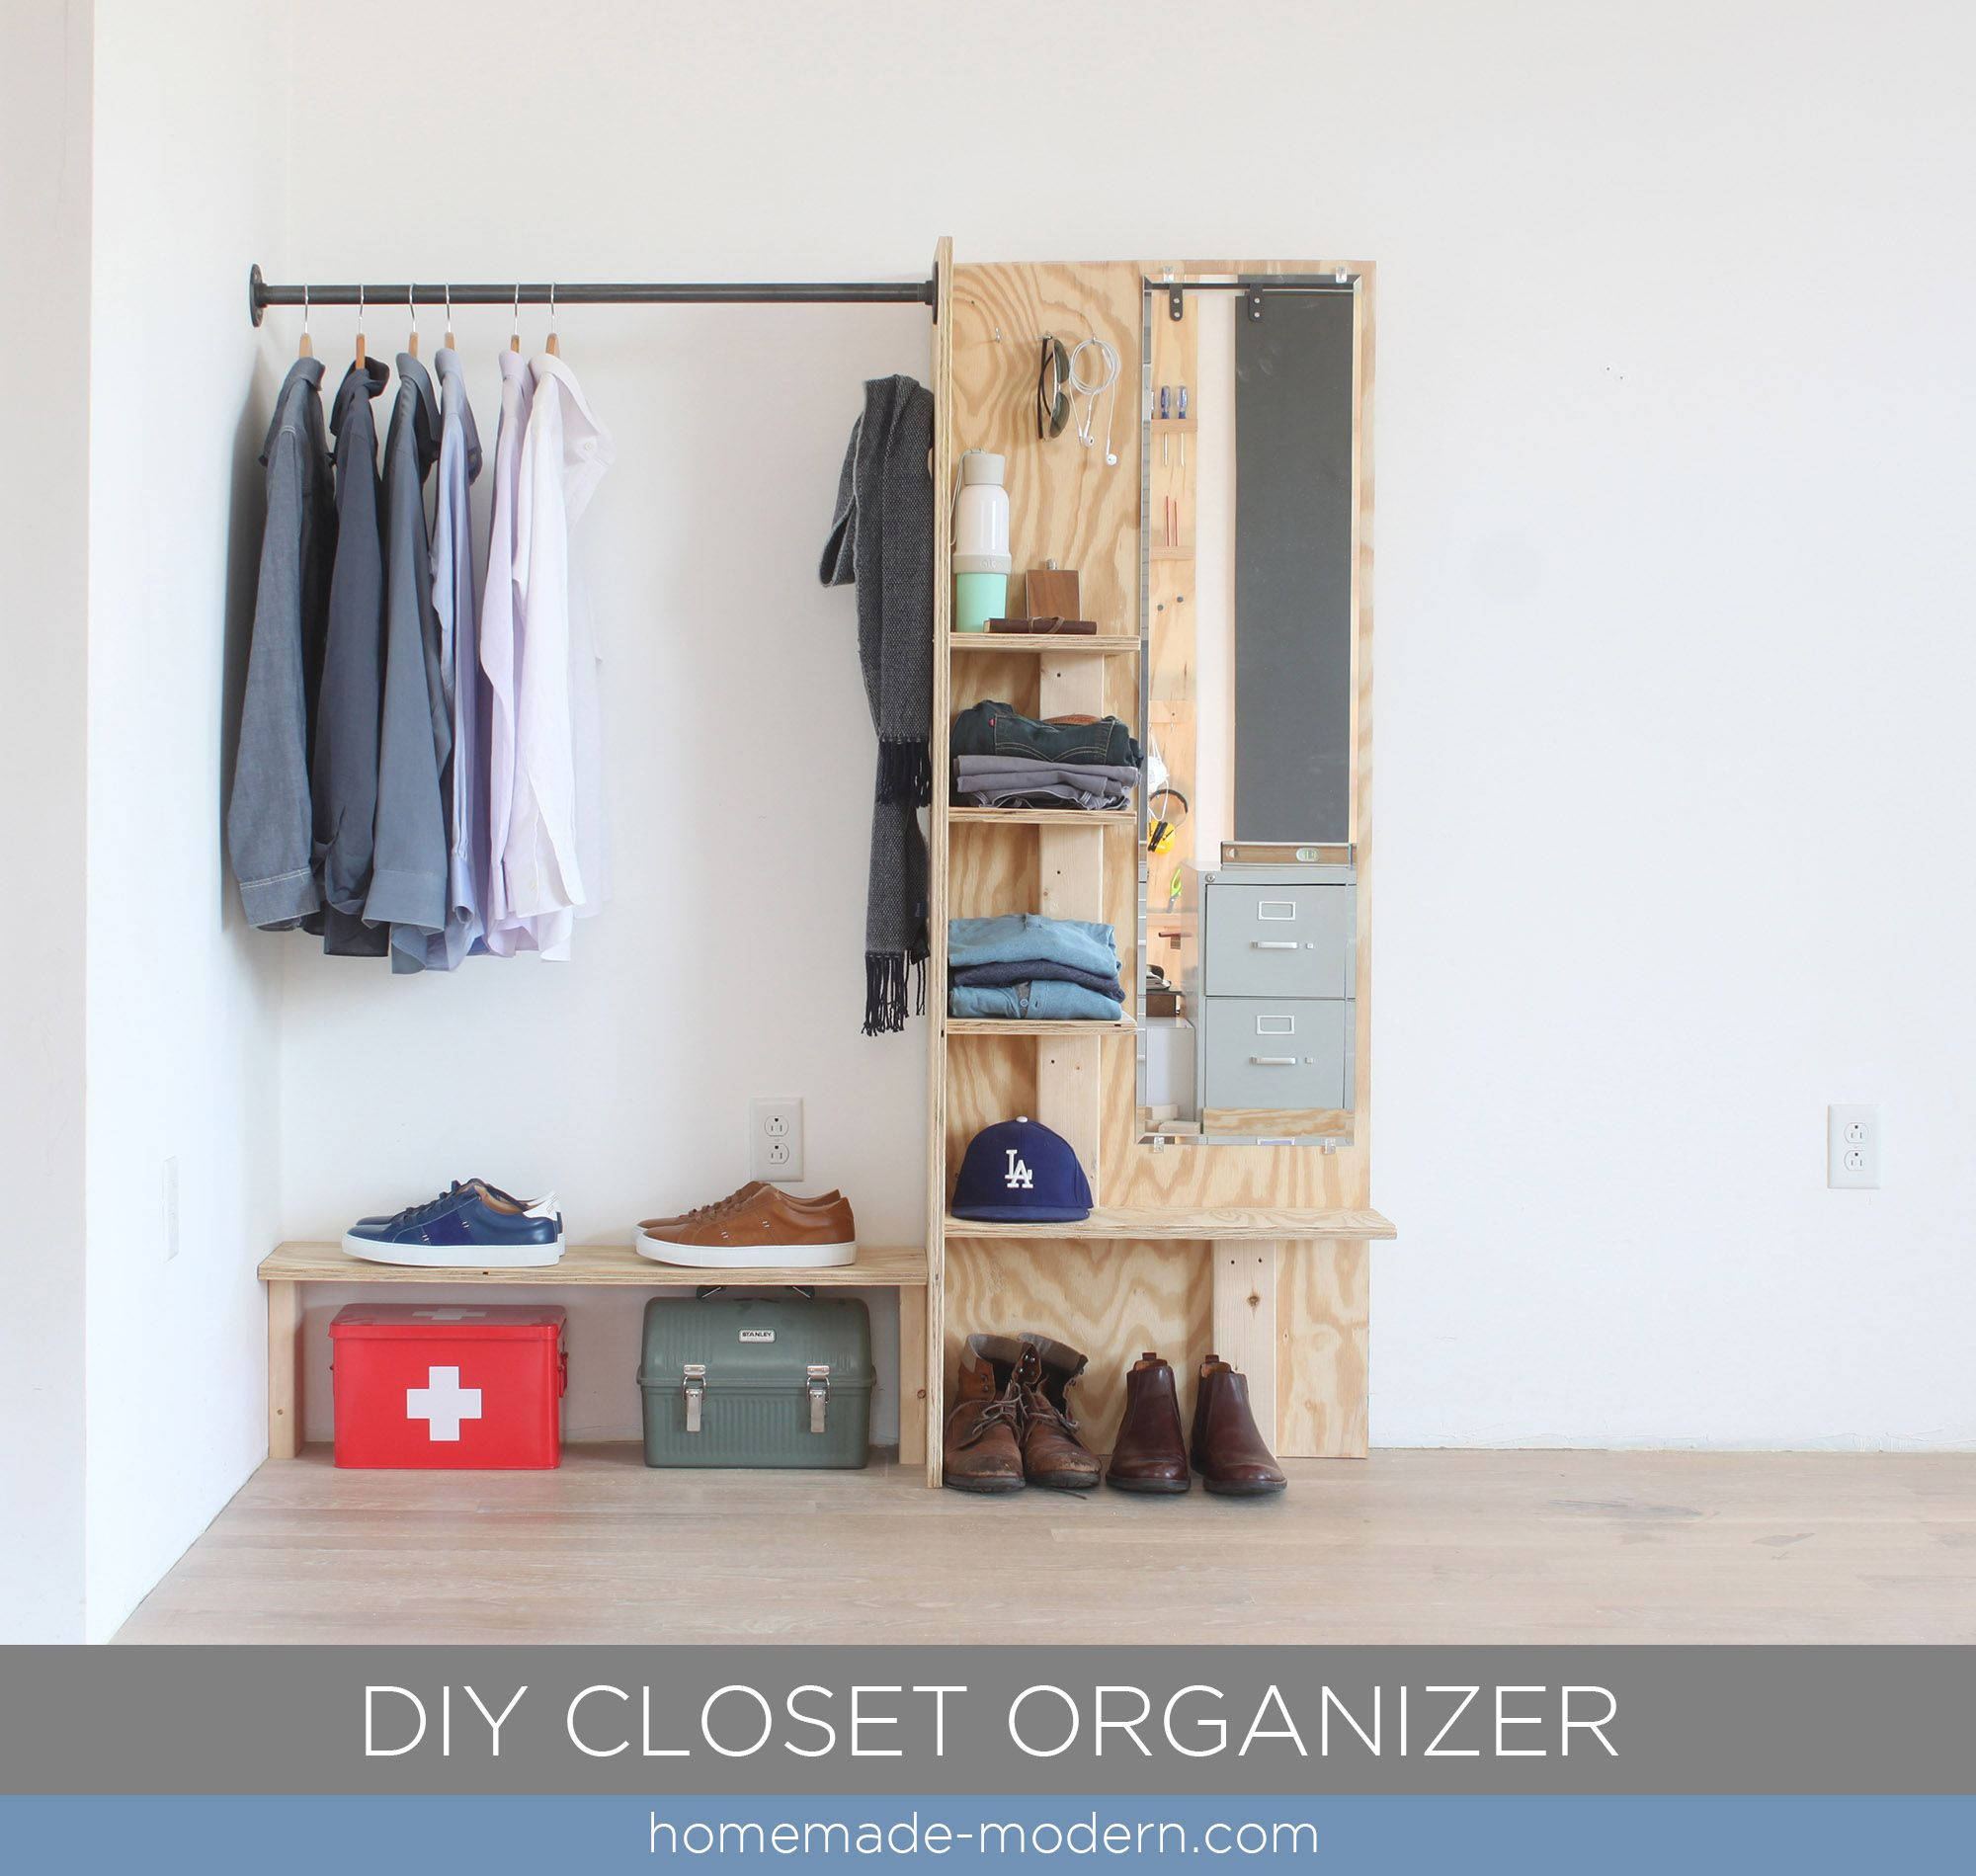 This DIY Closet Organizer is made from materials available at Home Depot. Full instructions can be found at HomeMade-Modern.com